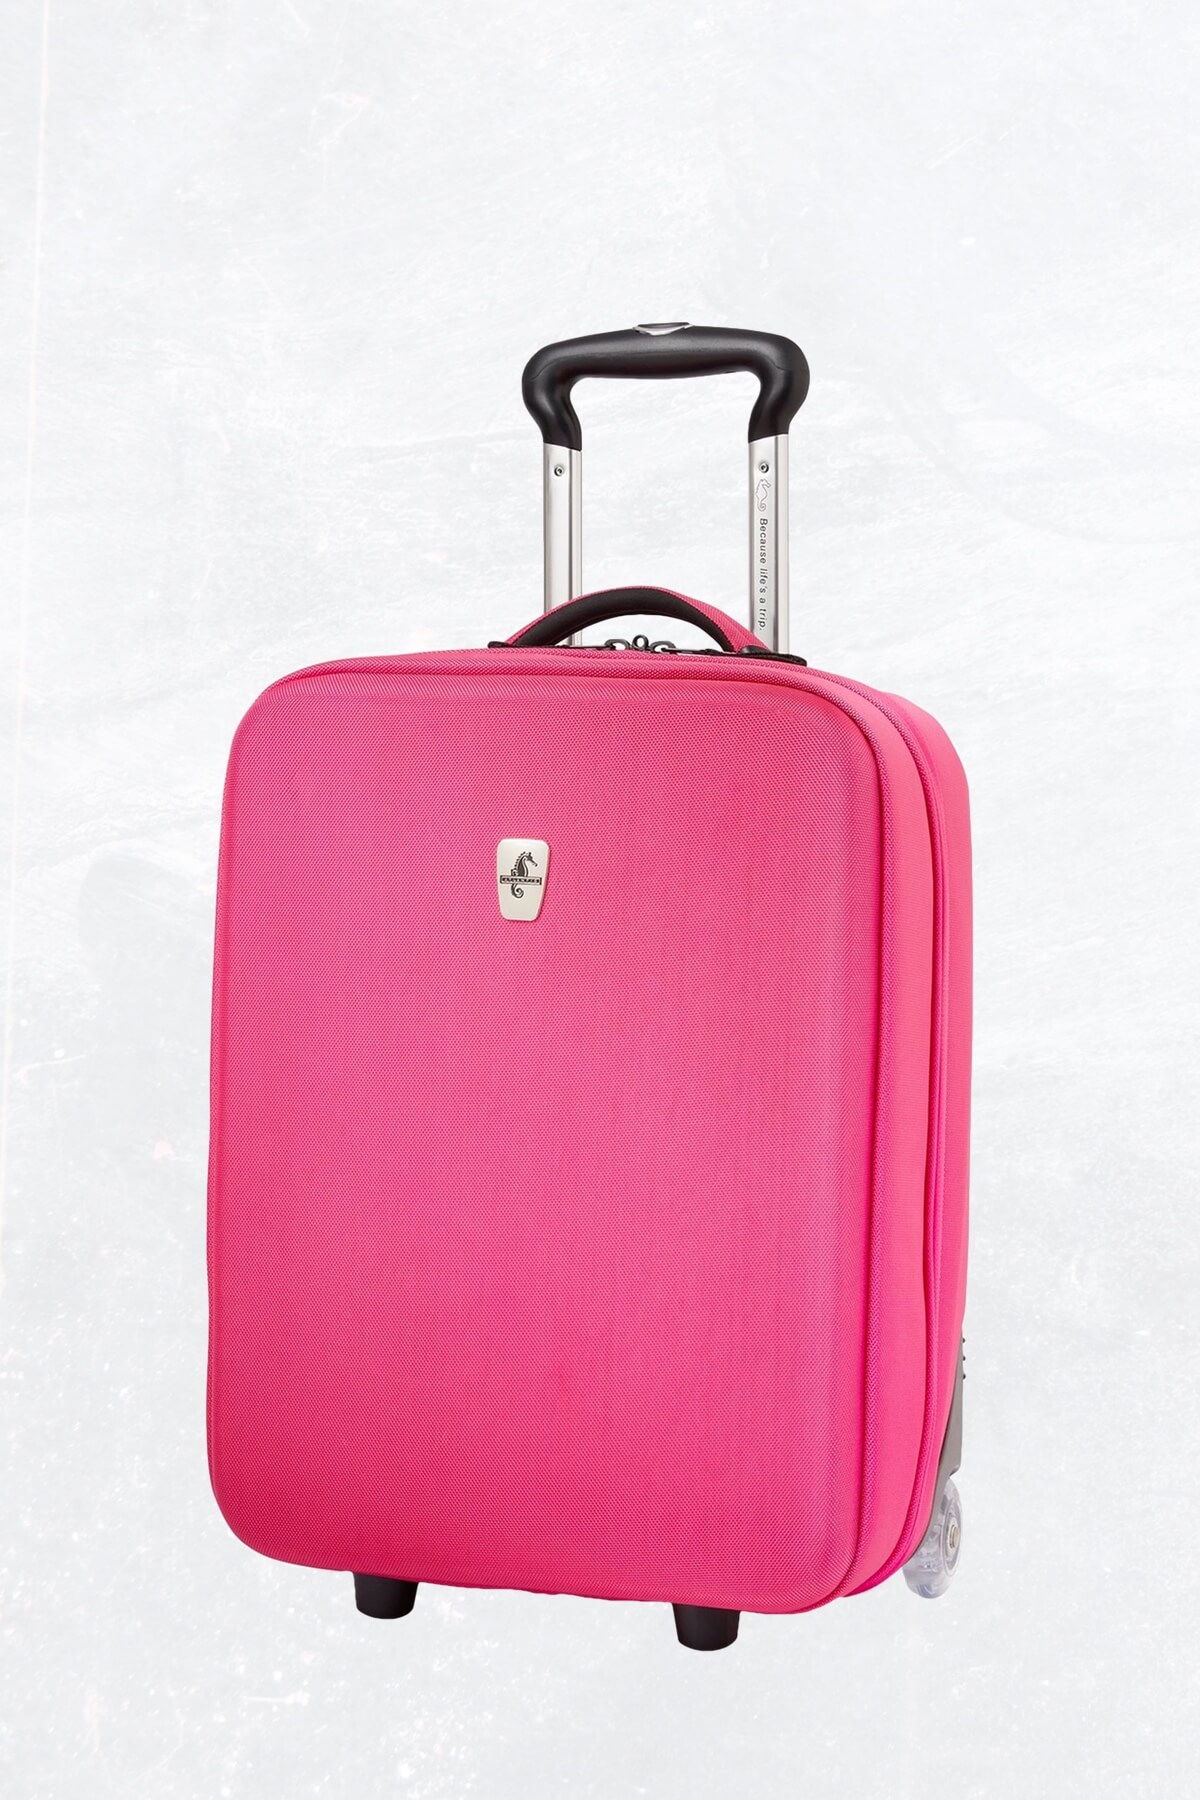 Atlantic Luggage Debut Carry-on, pink